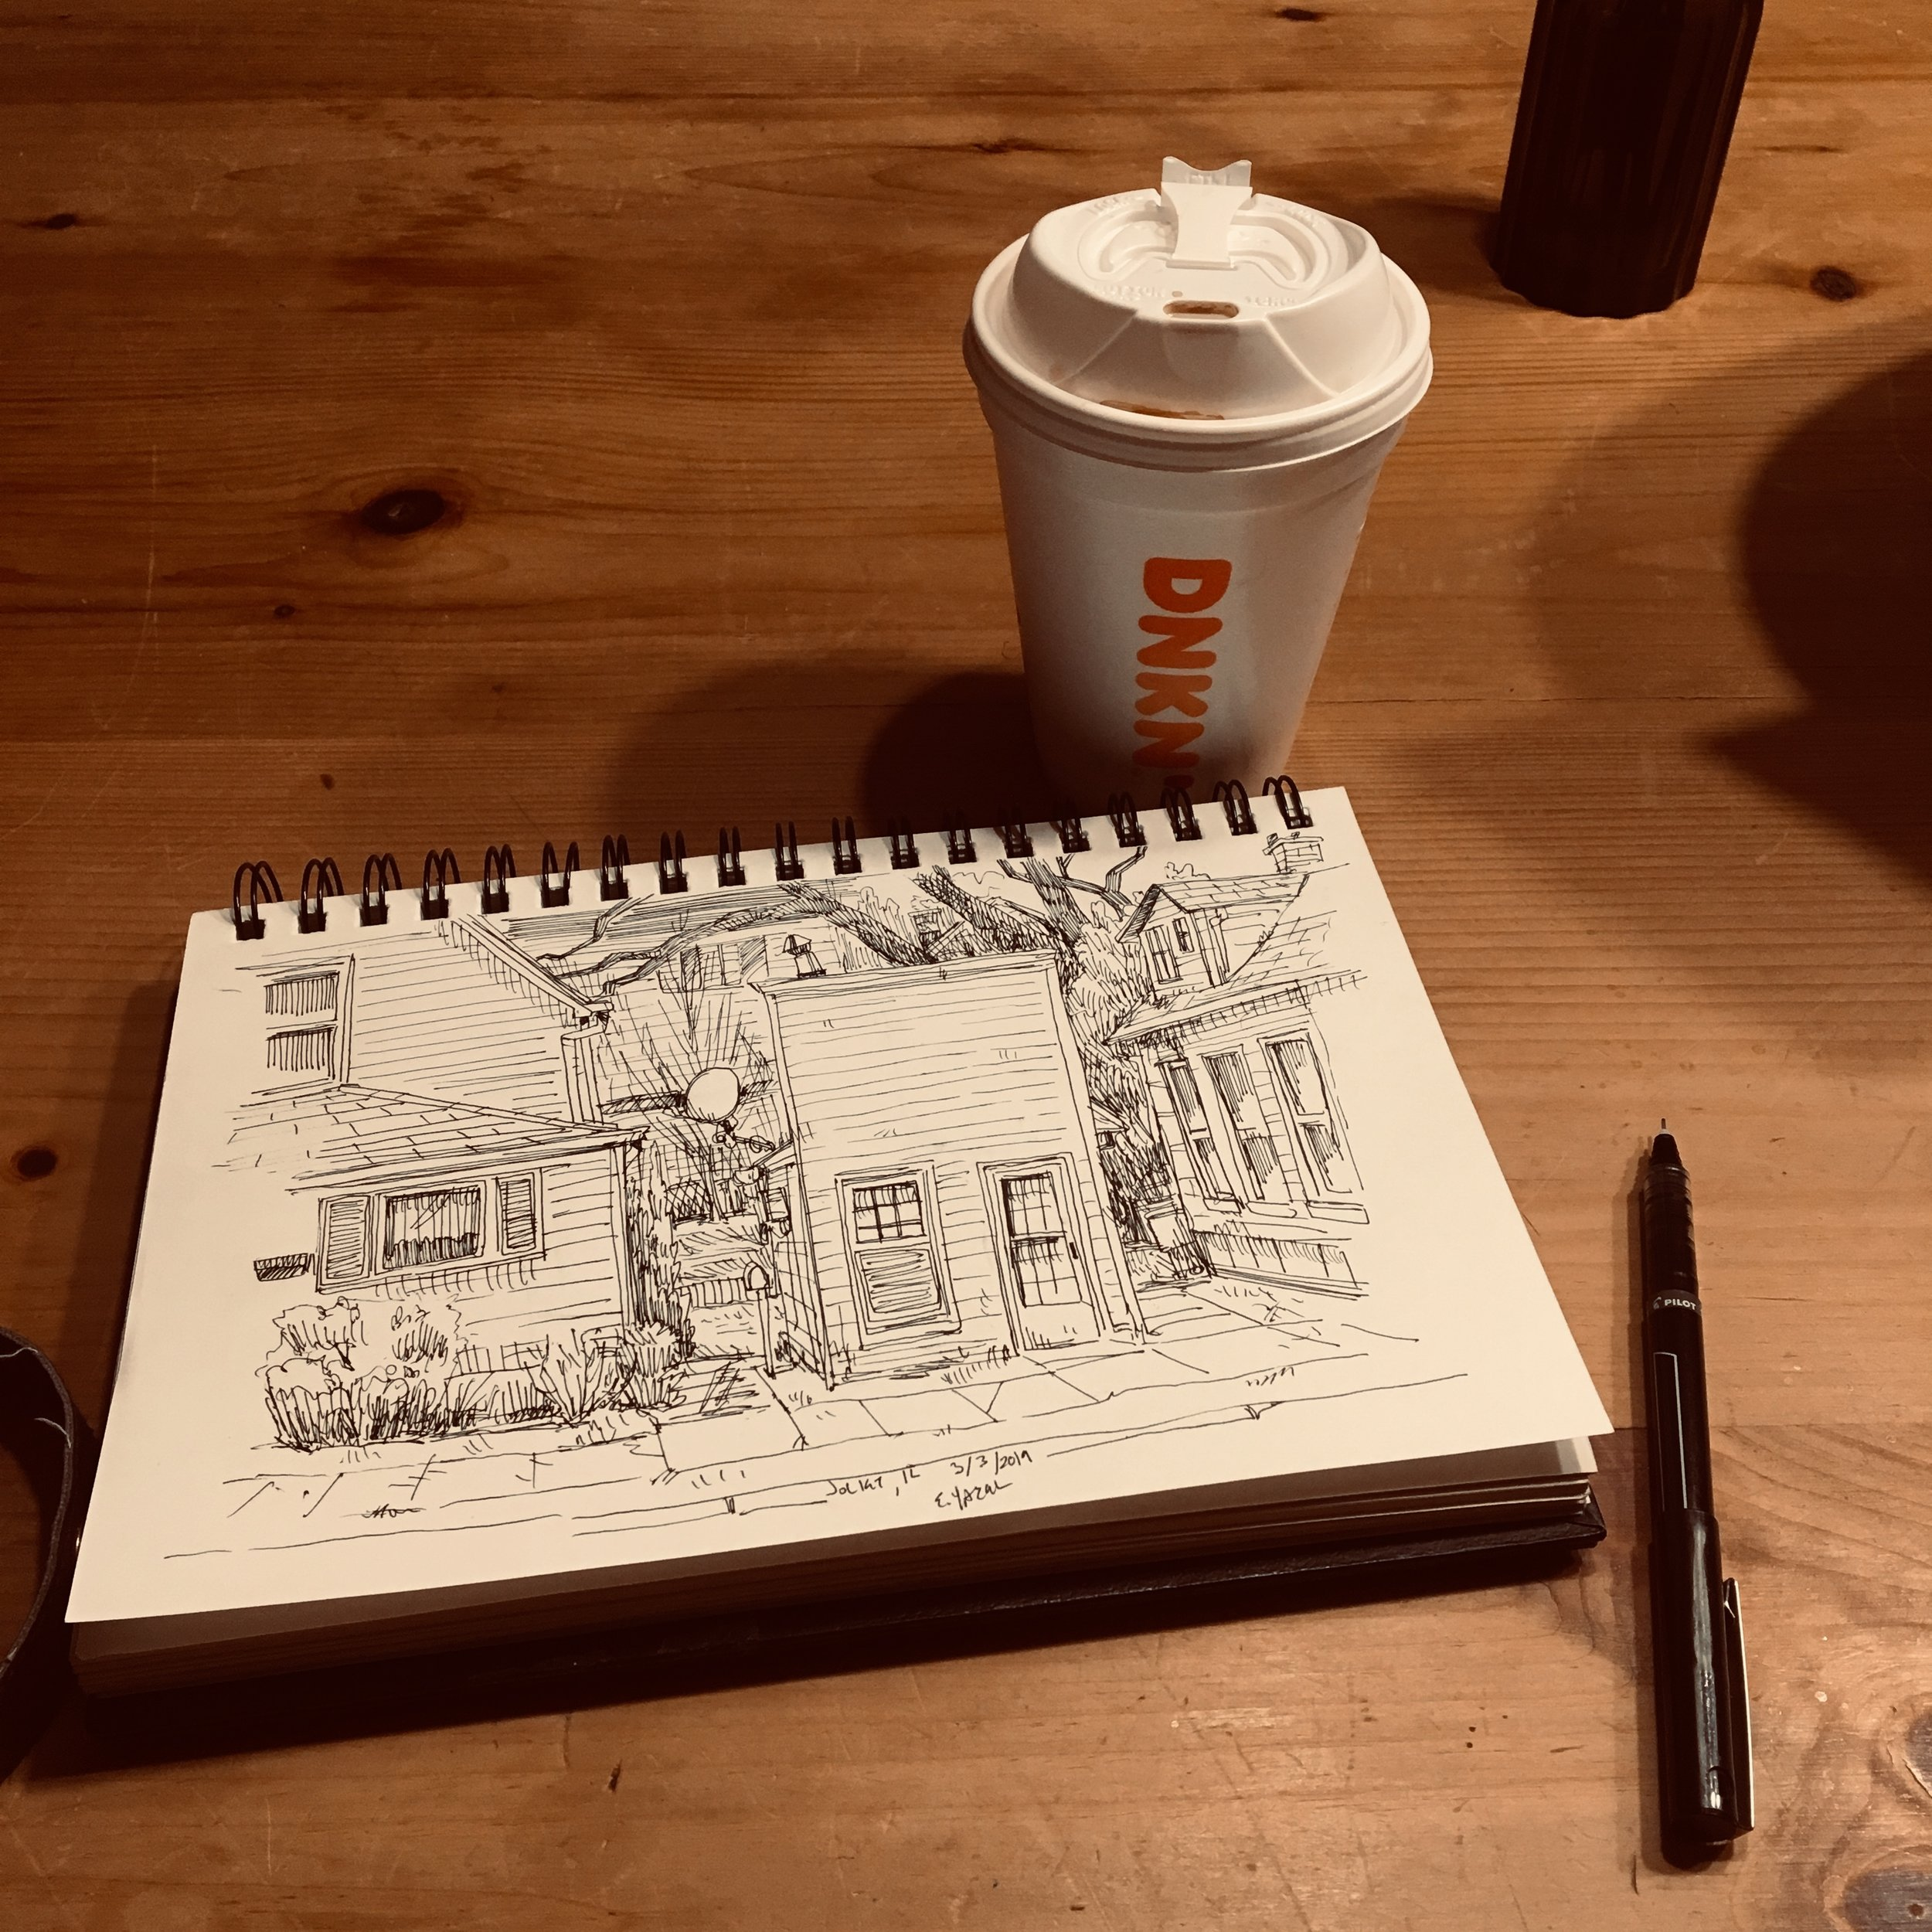 My sketchbook is a loyal travel companion. This trip was into Illinois where I found a delightful little home near an alley